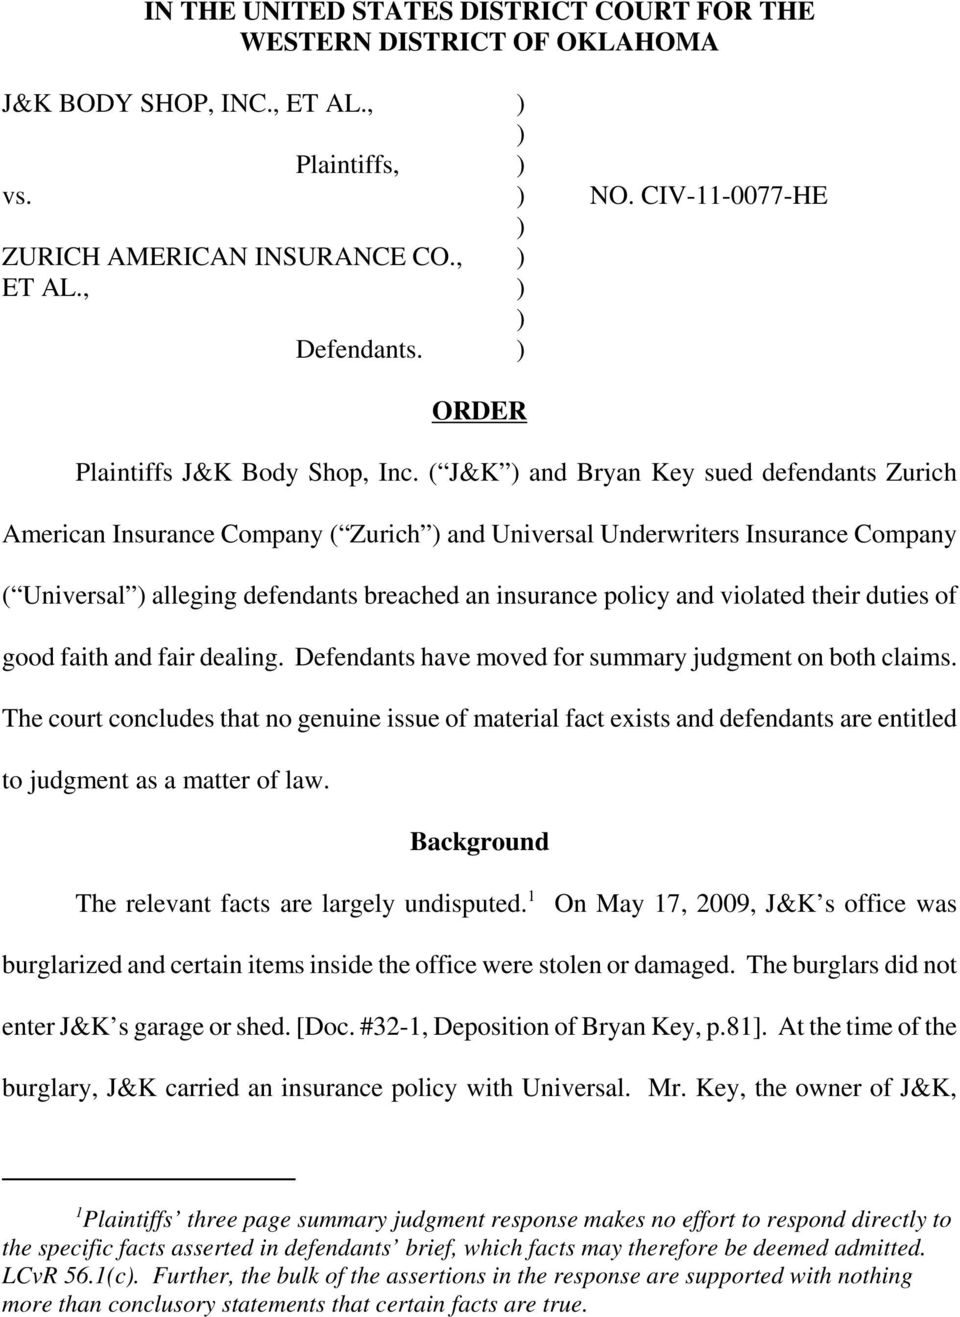 ( J&K ) and Bryan Key sued defendants Zurich American Insurance Company ( Zurich ) and Universal Underwriters Insurance Company ( Universal ) alleging defendants breached an insurance policy and